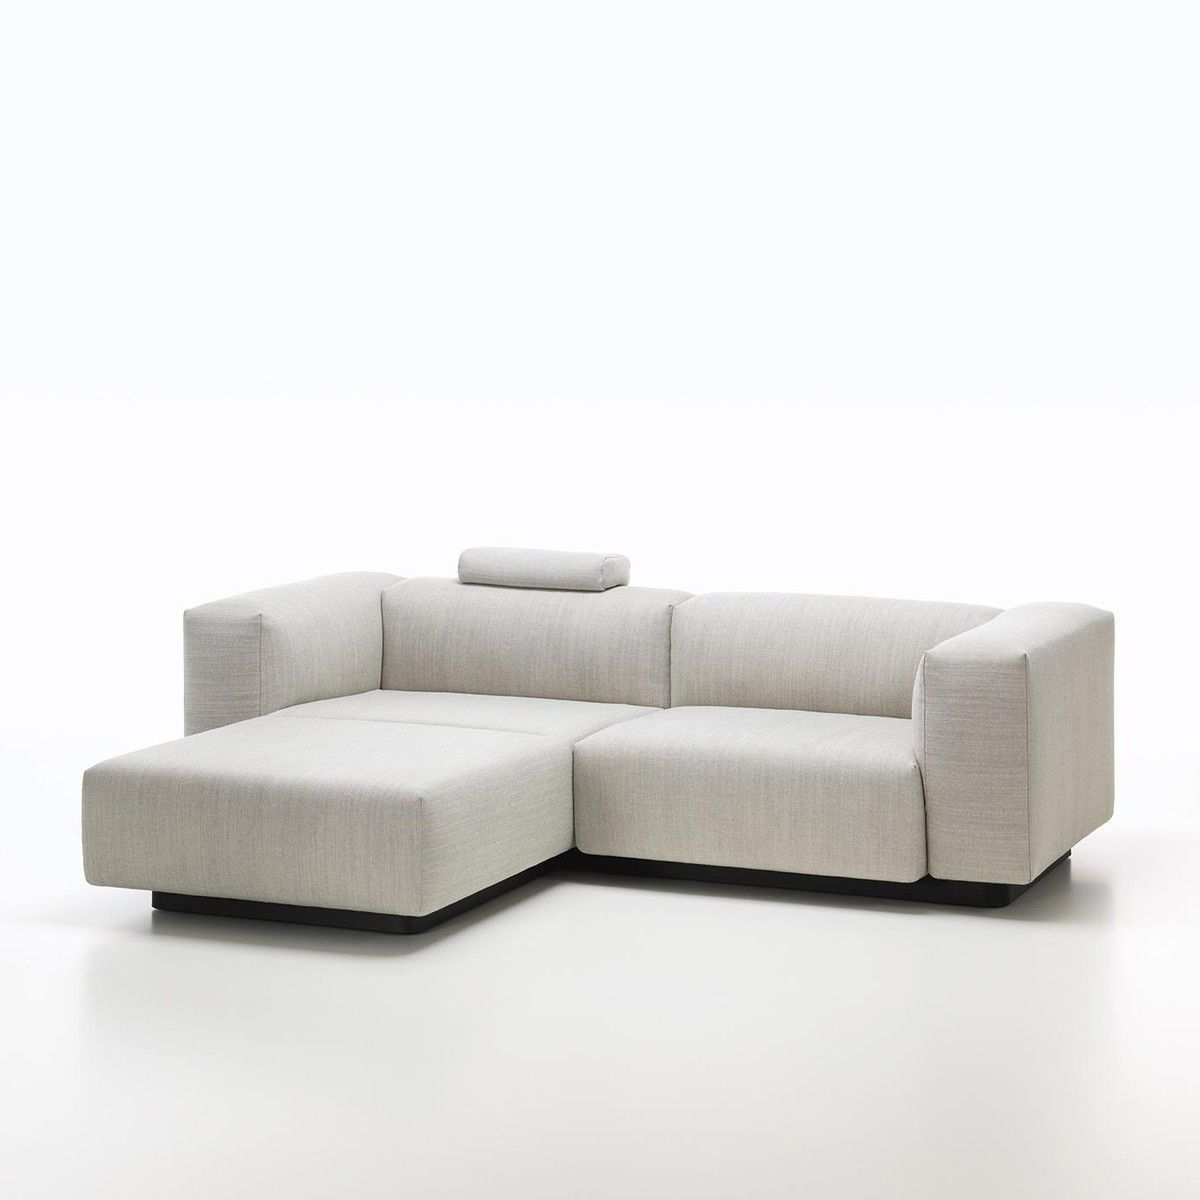 vitra sofa modular sectional bed rooms to go soft 2 seater ambientedirect